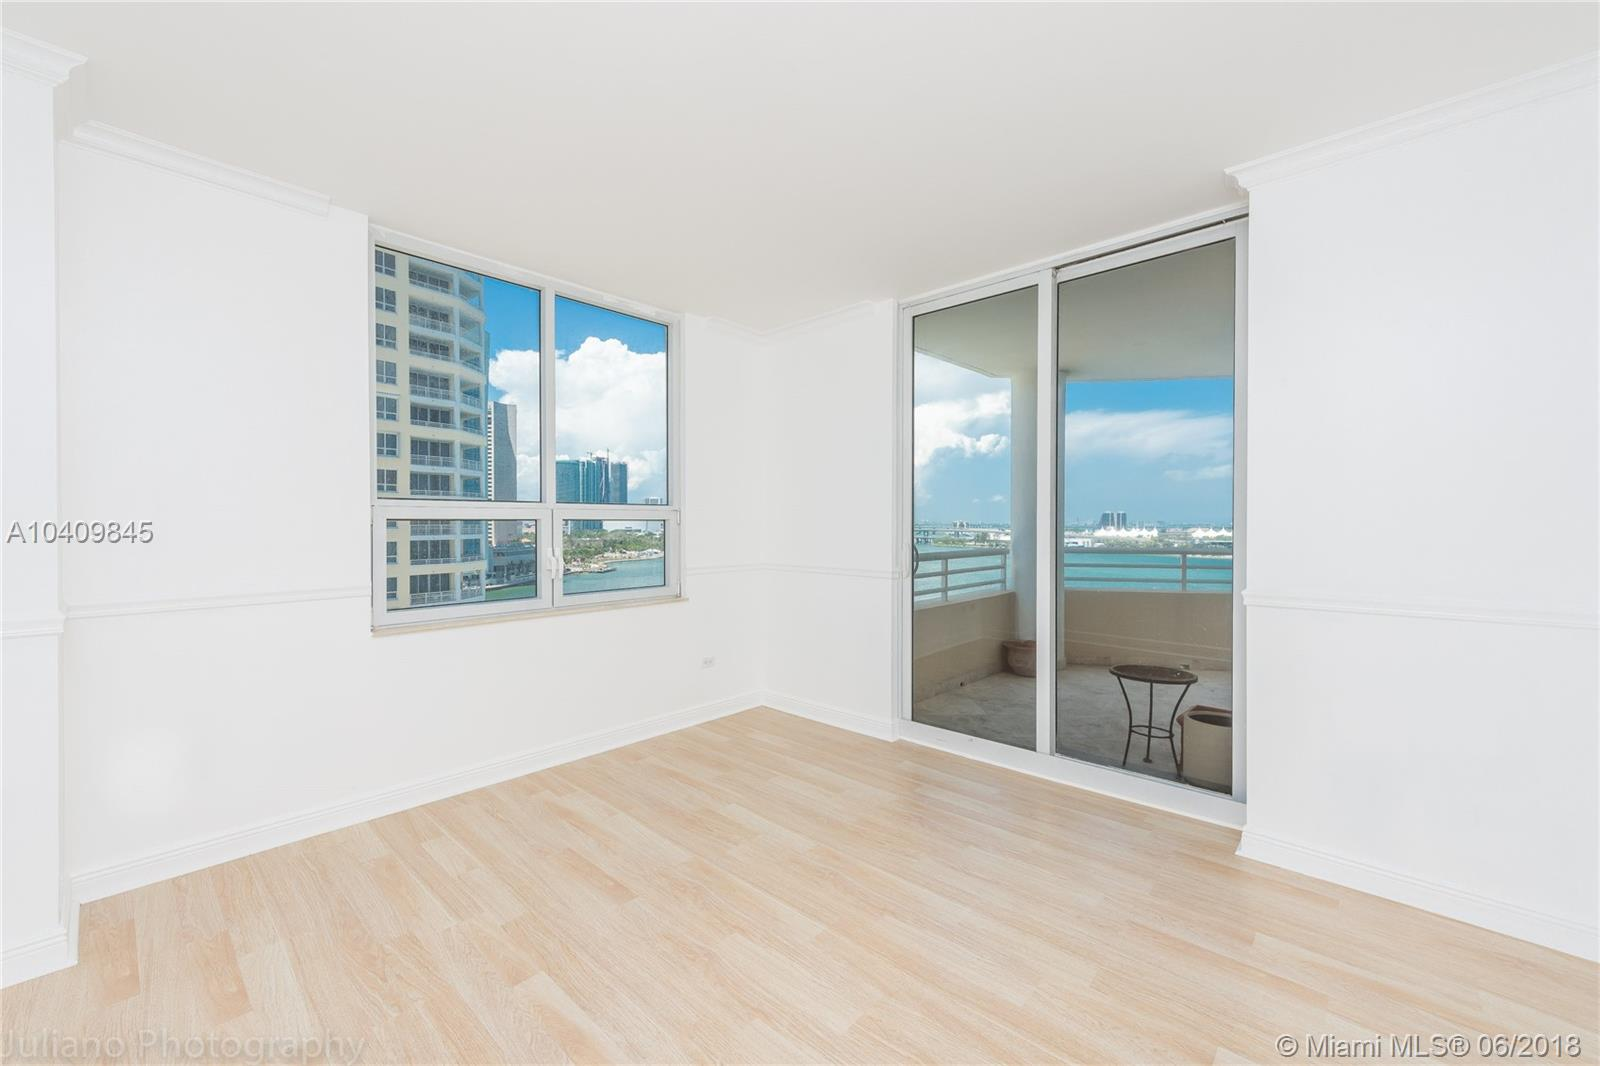 808 Brickell Key Dr #1101, Miami FL, 33131